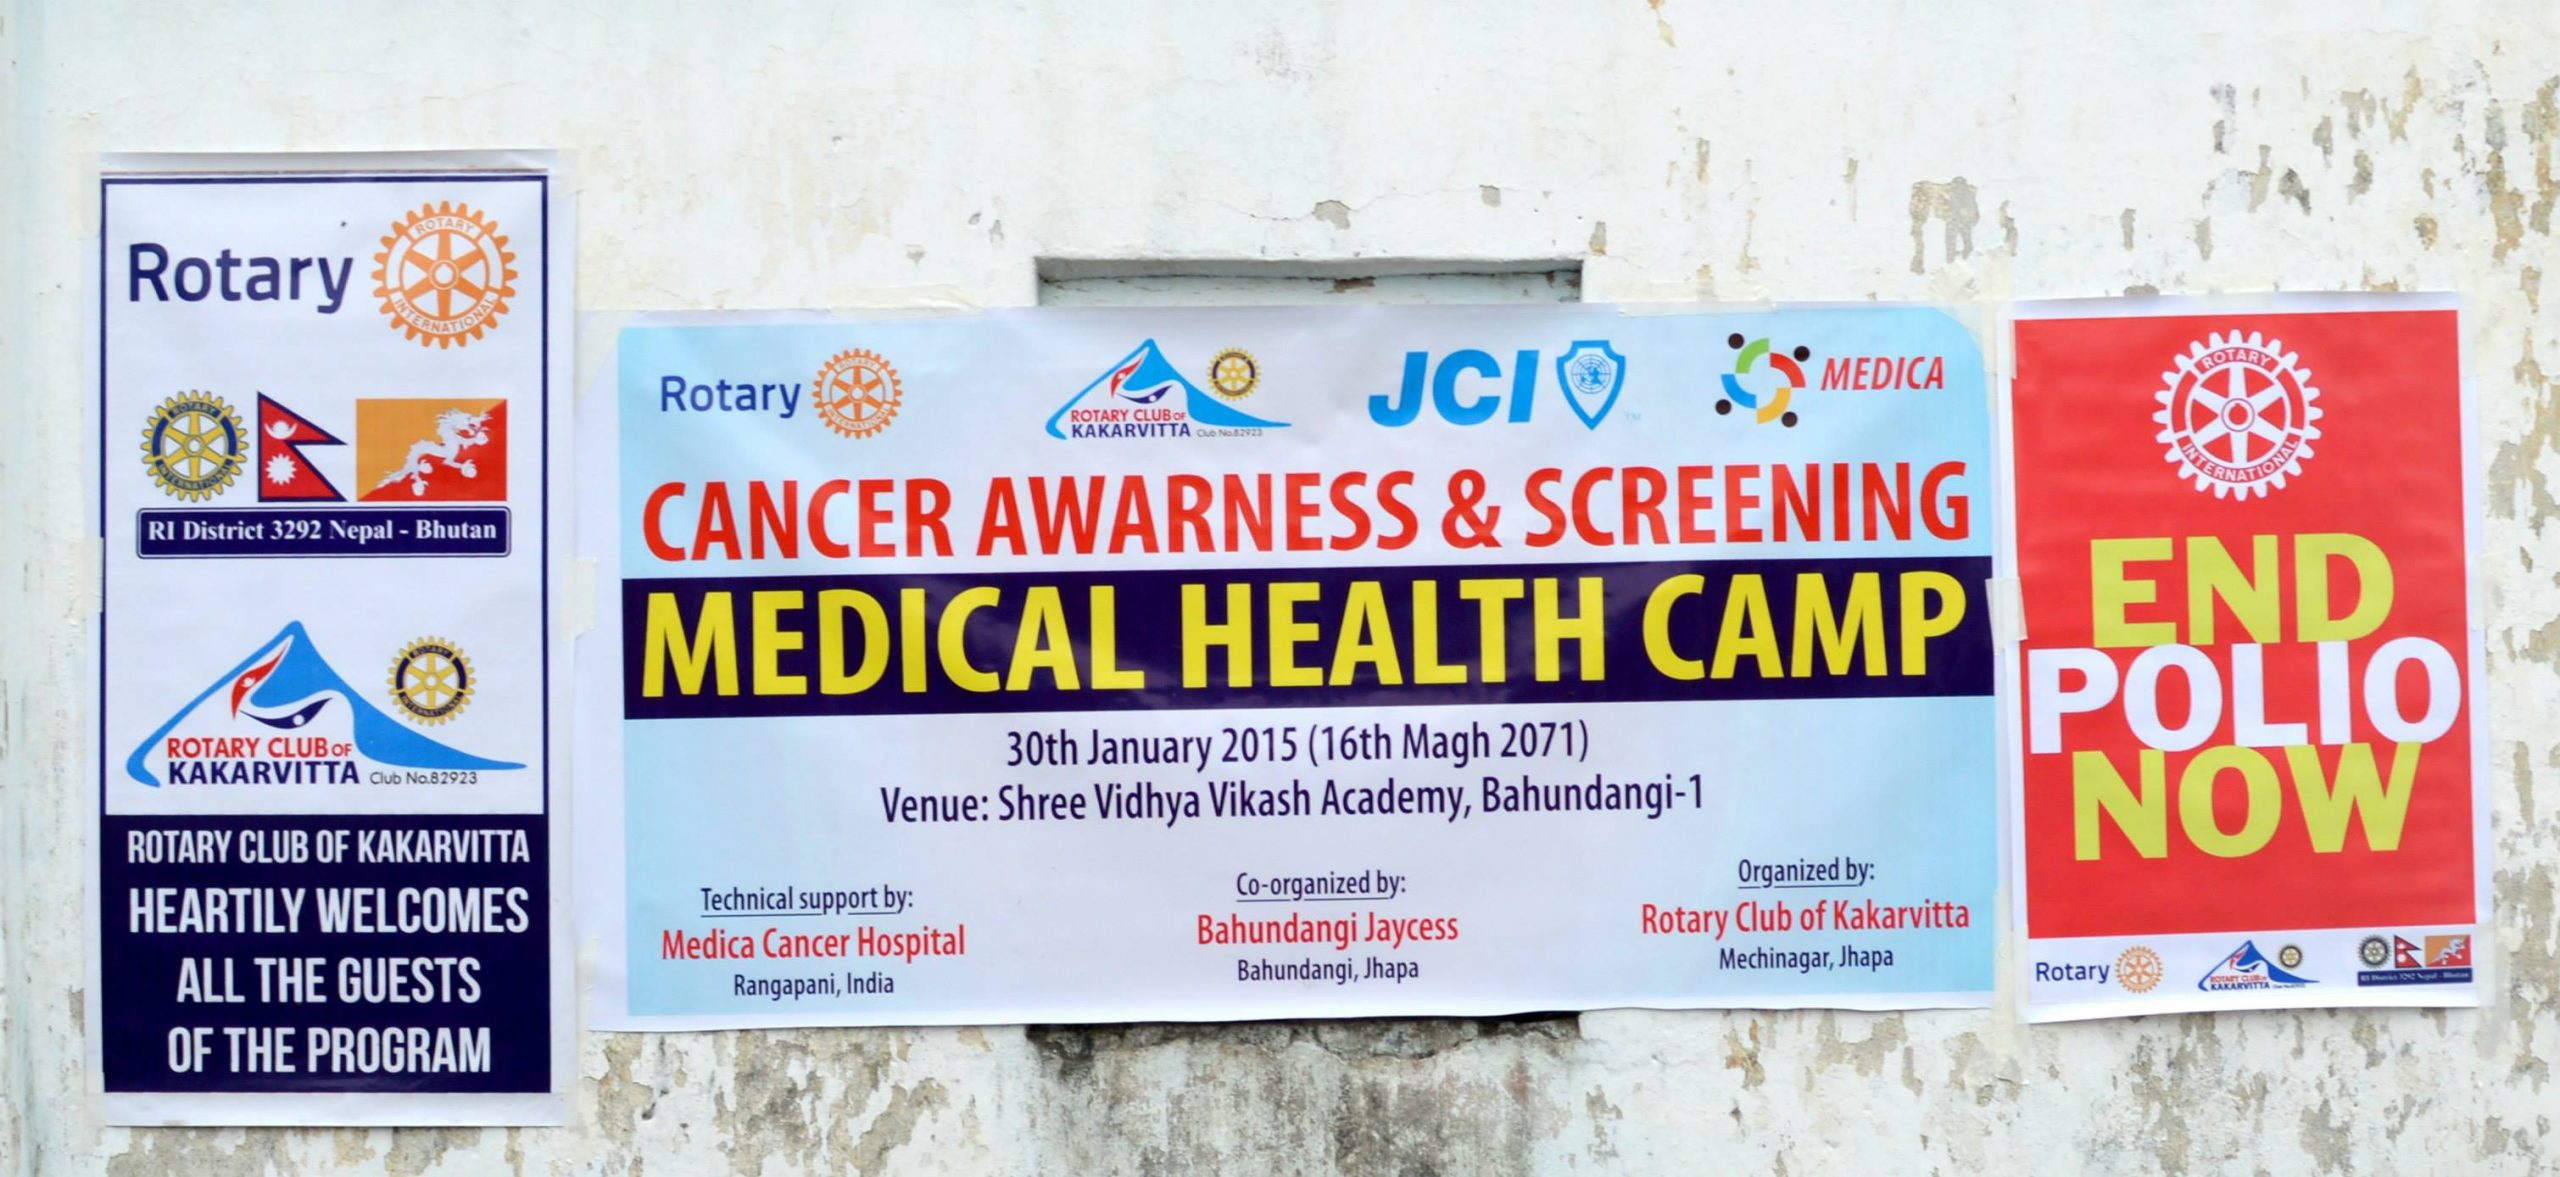 Cancer Awareness Screening Medical Health Camp 10